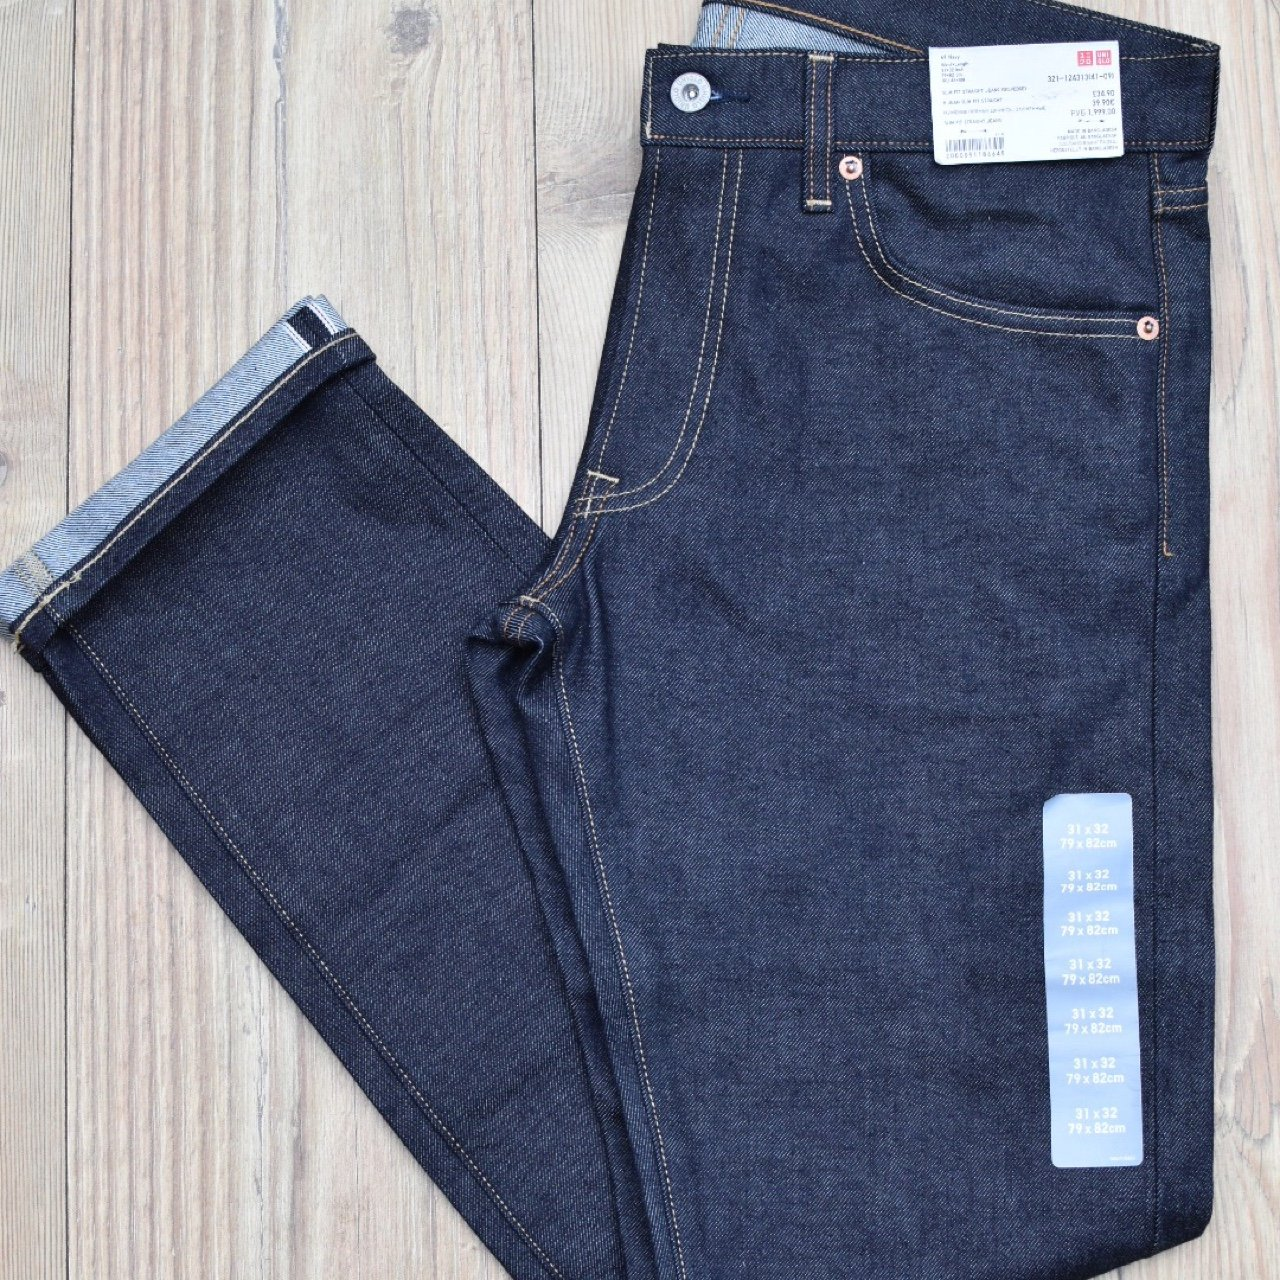 90398340 Brand new Uniqlo selvedge slim fit jeans for sale. Never 31 - Depop